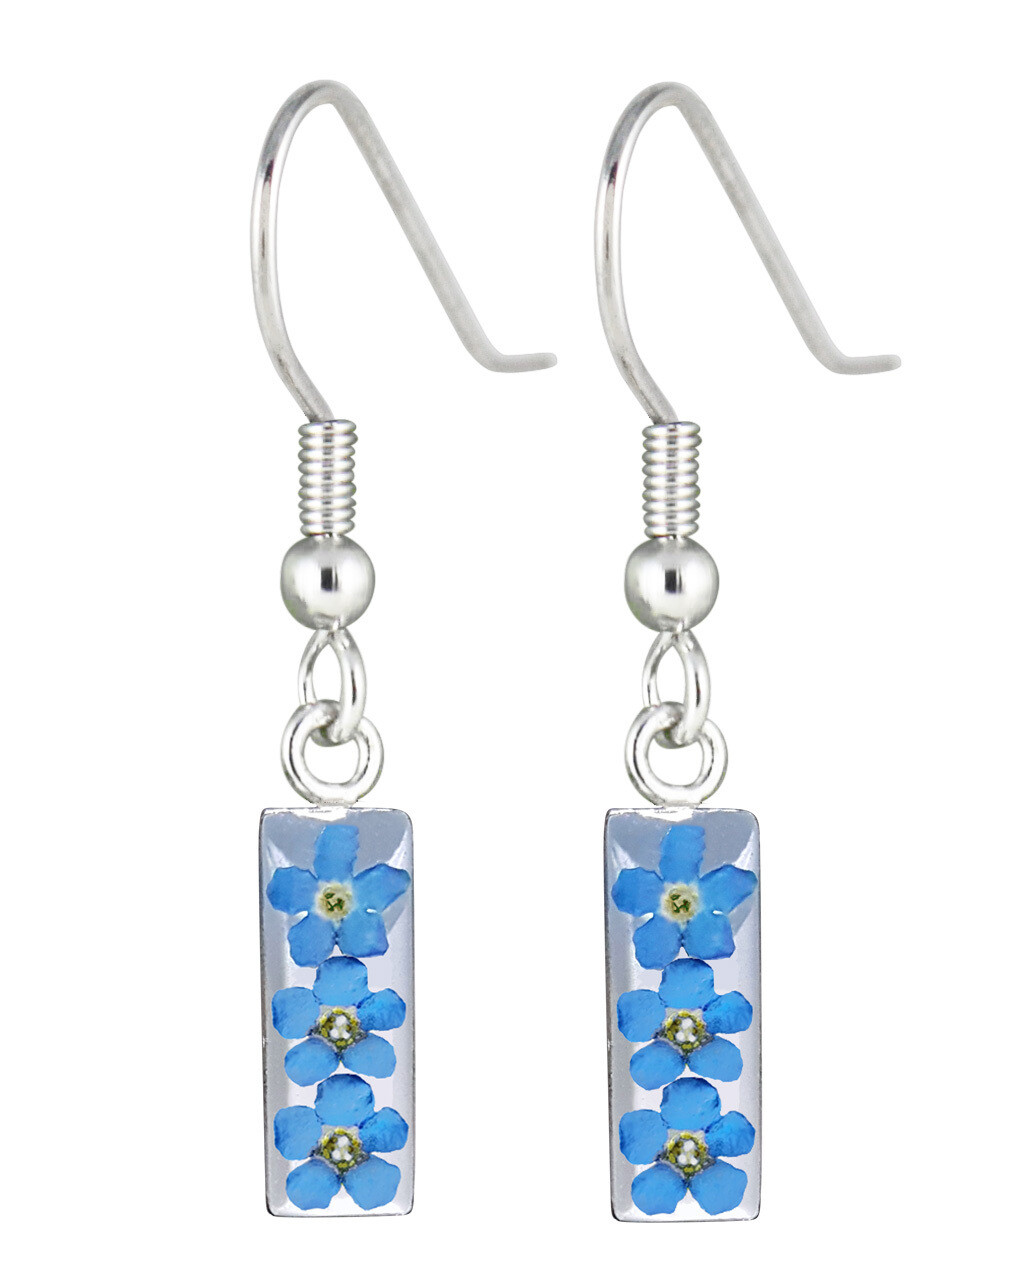 Real Forget-Me-Not, Rectangle Earrings, White Background